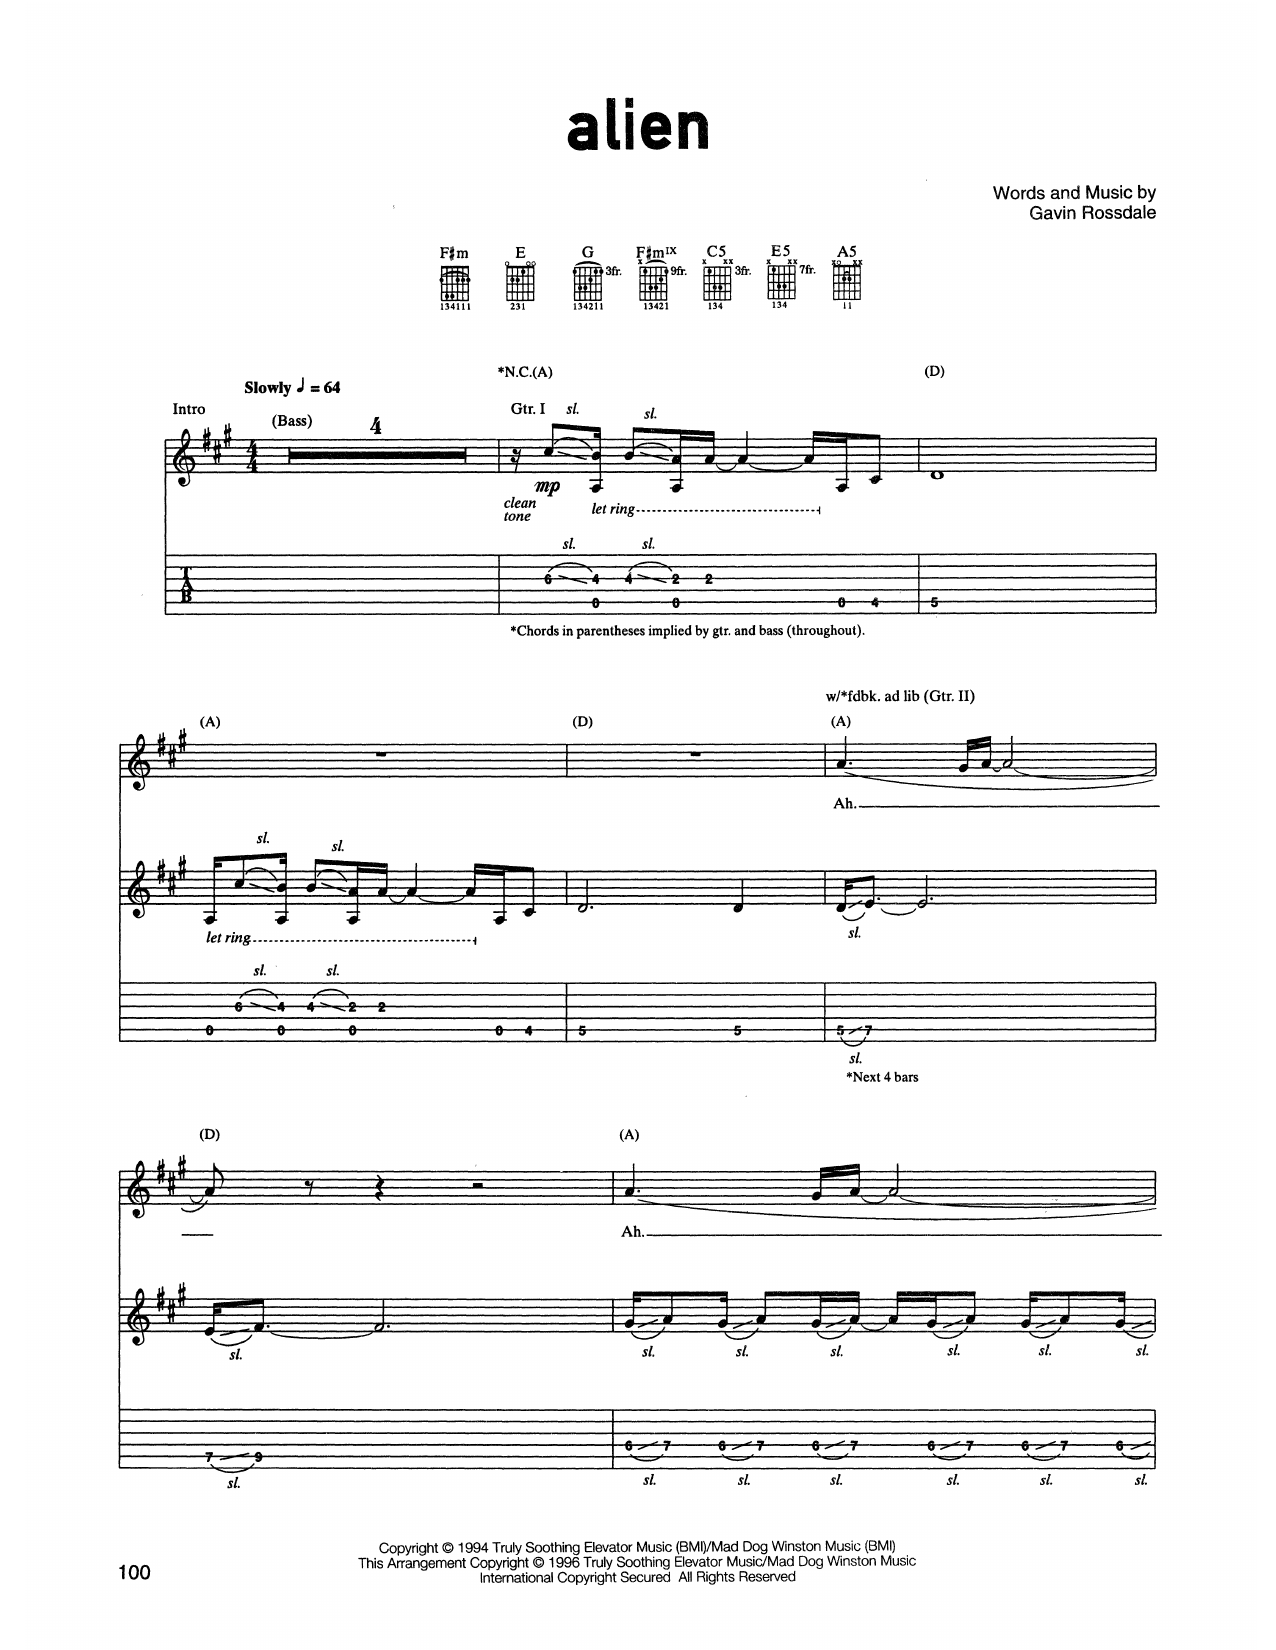 Bush Alien sheet music notes printable PDF score